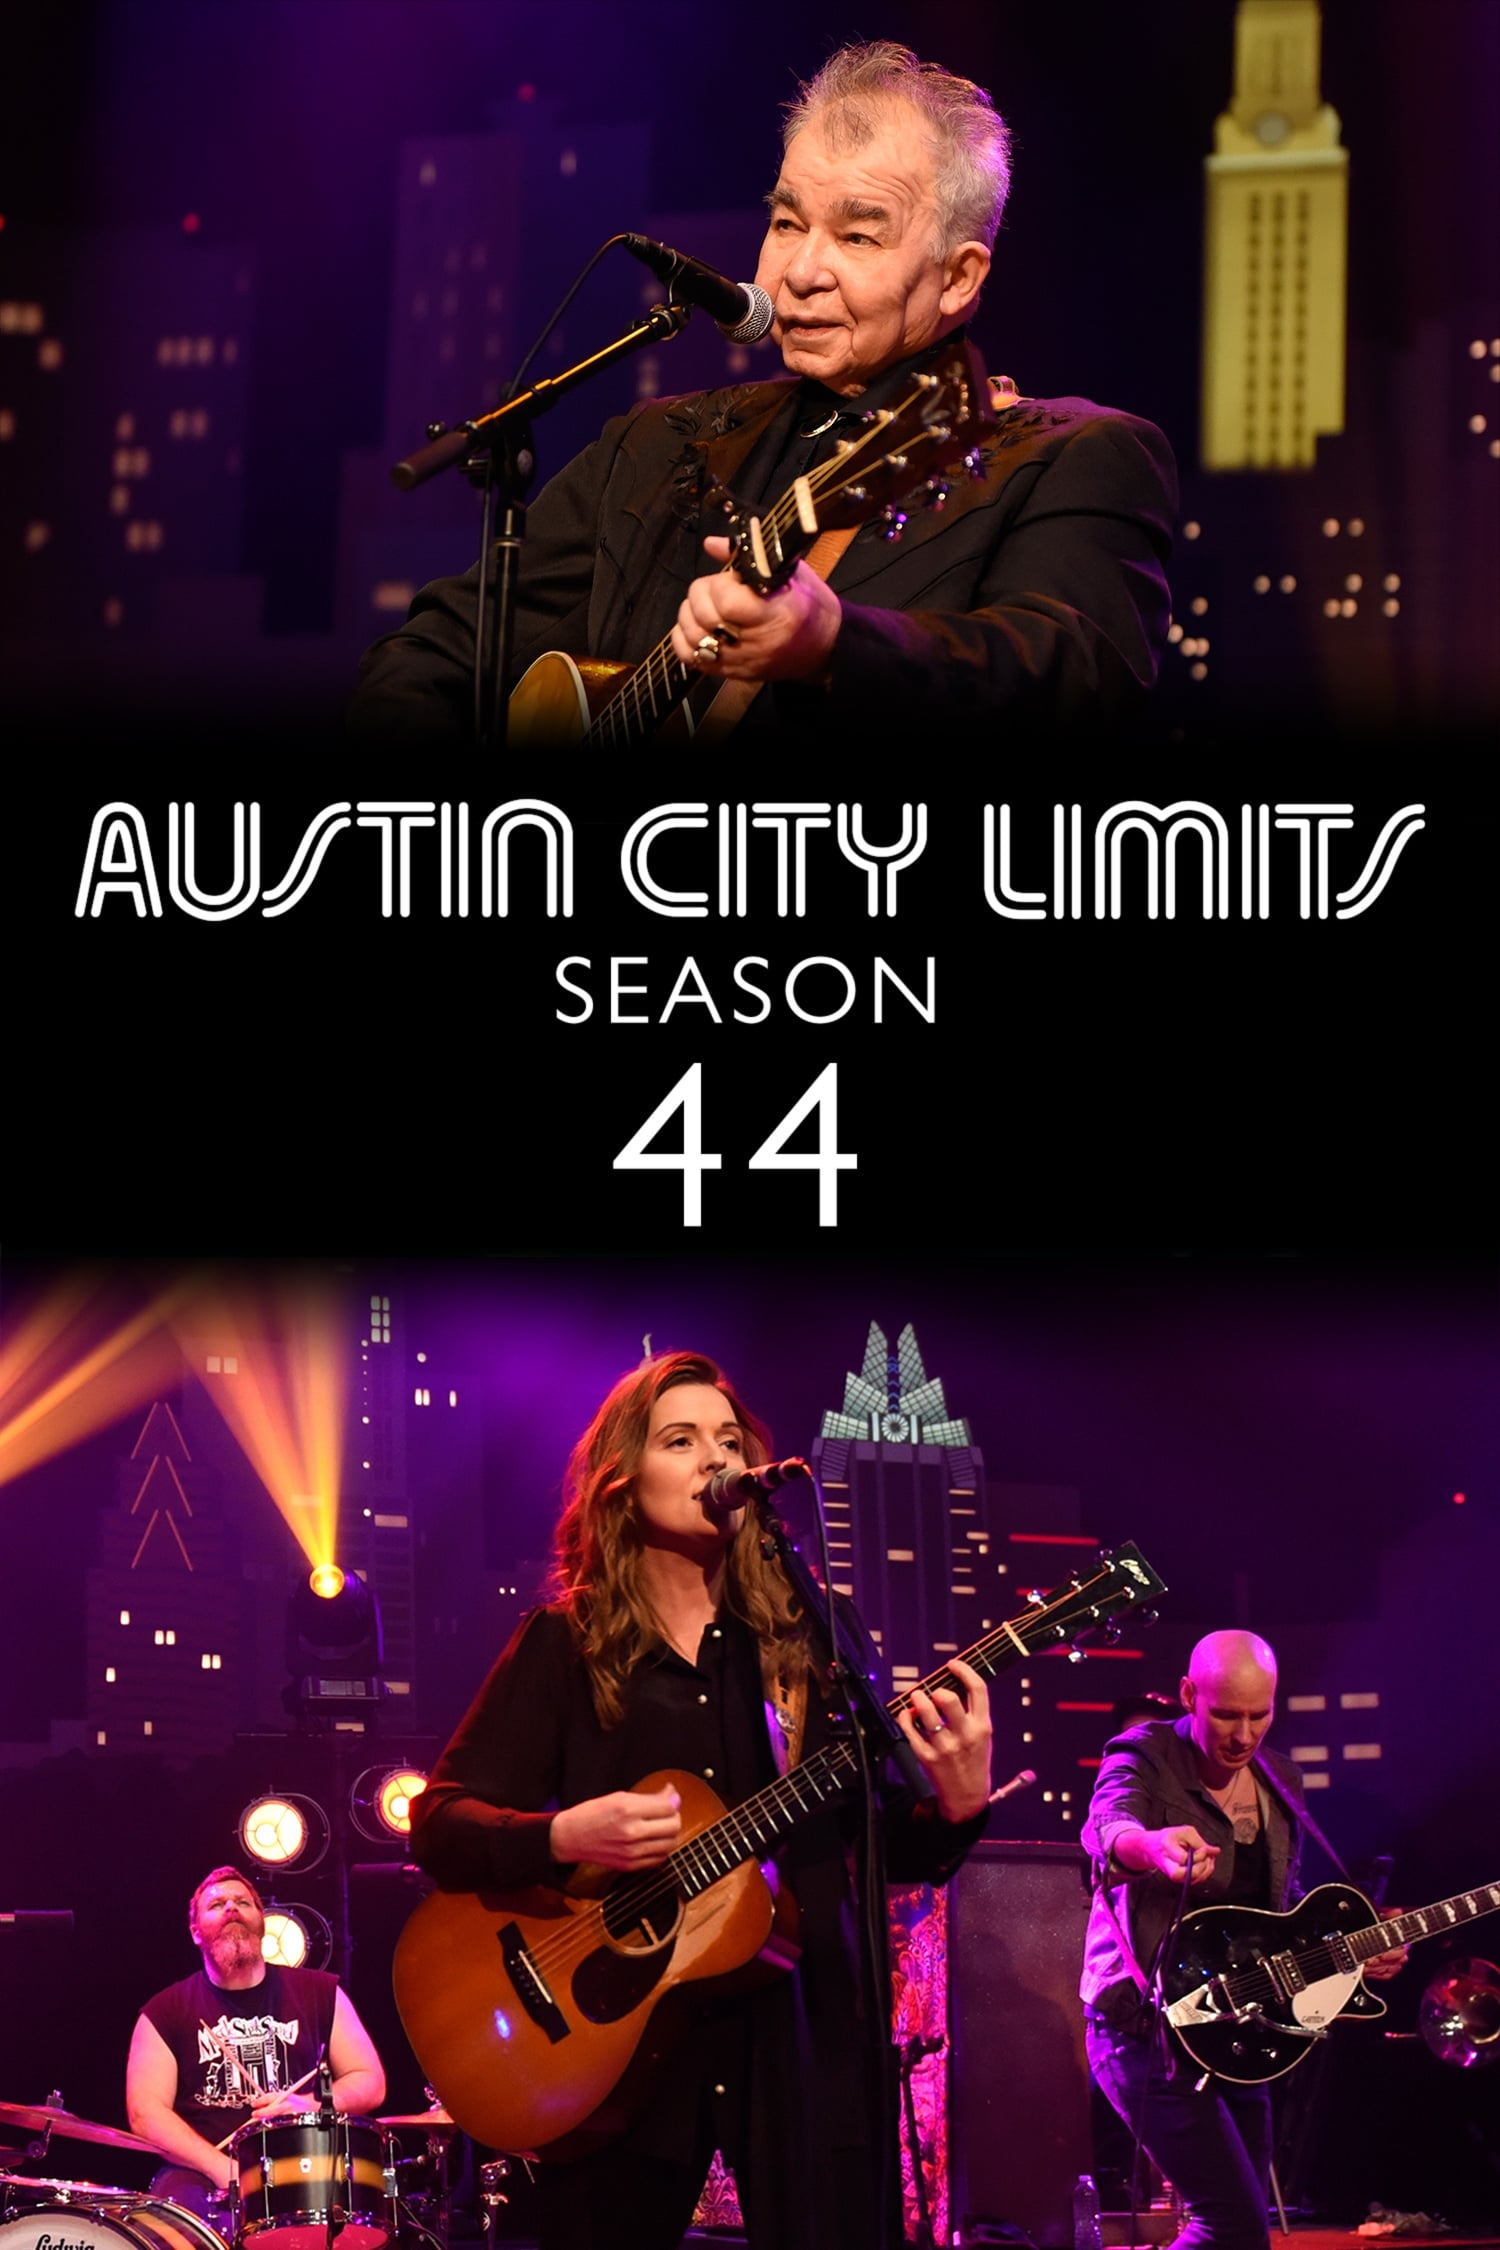 Austin City Limits Season 44